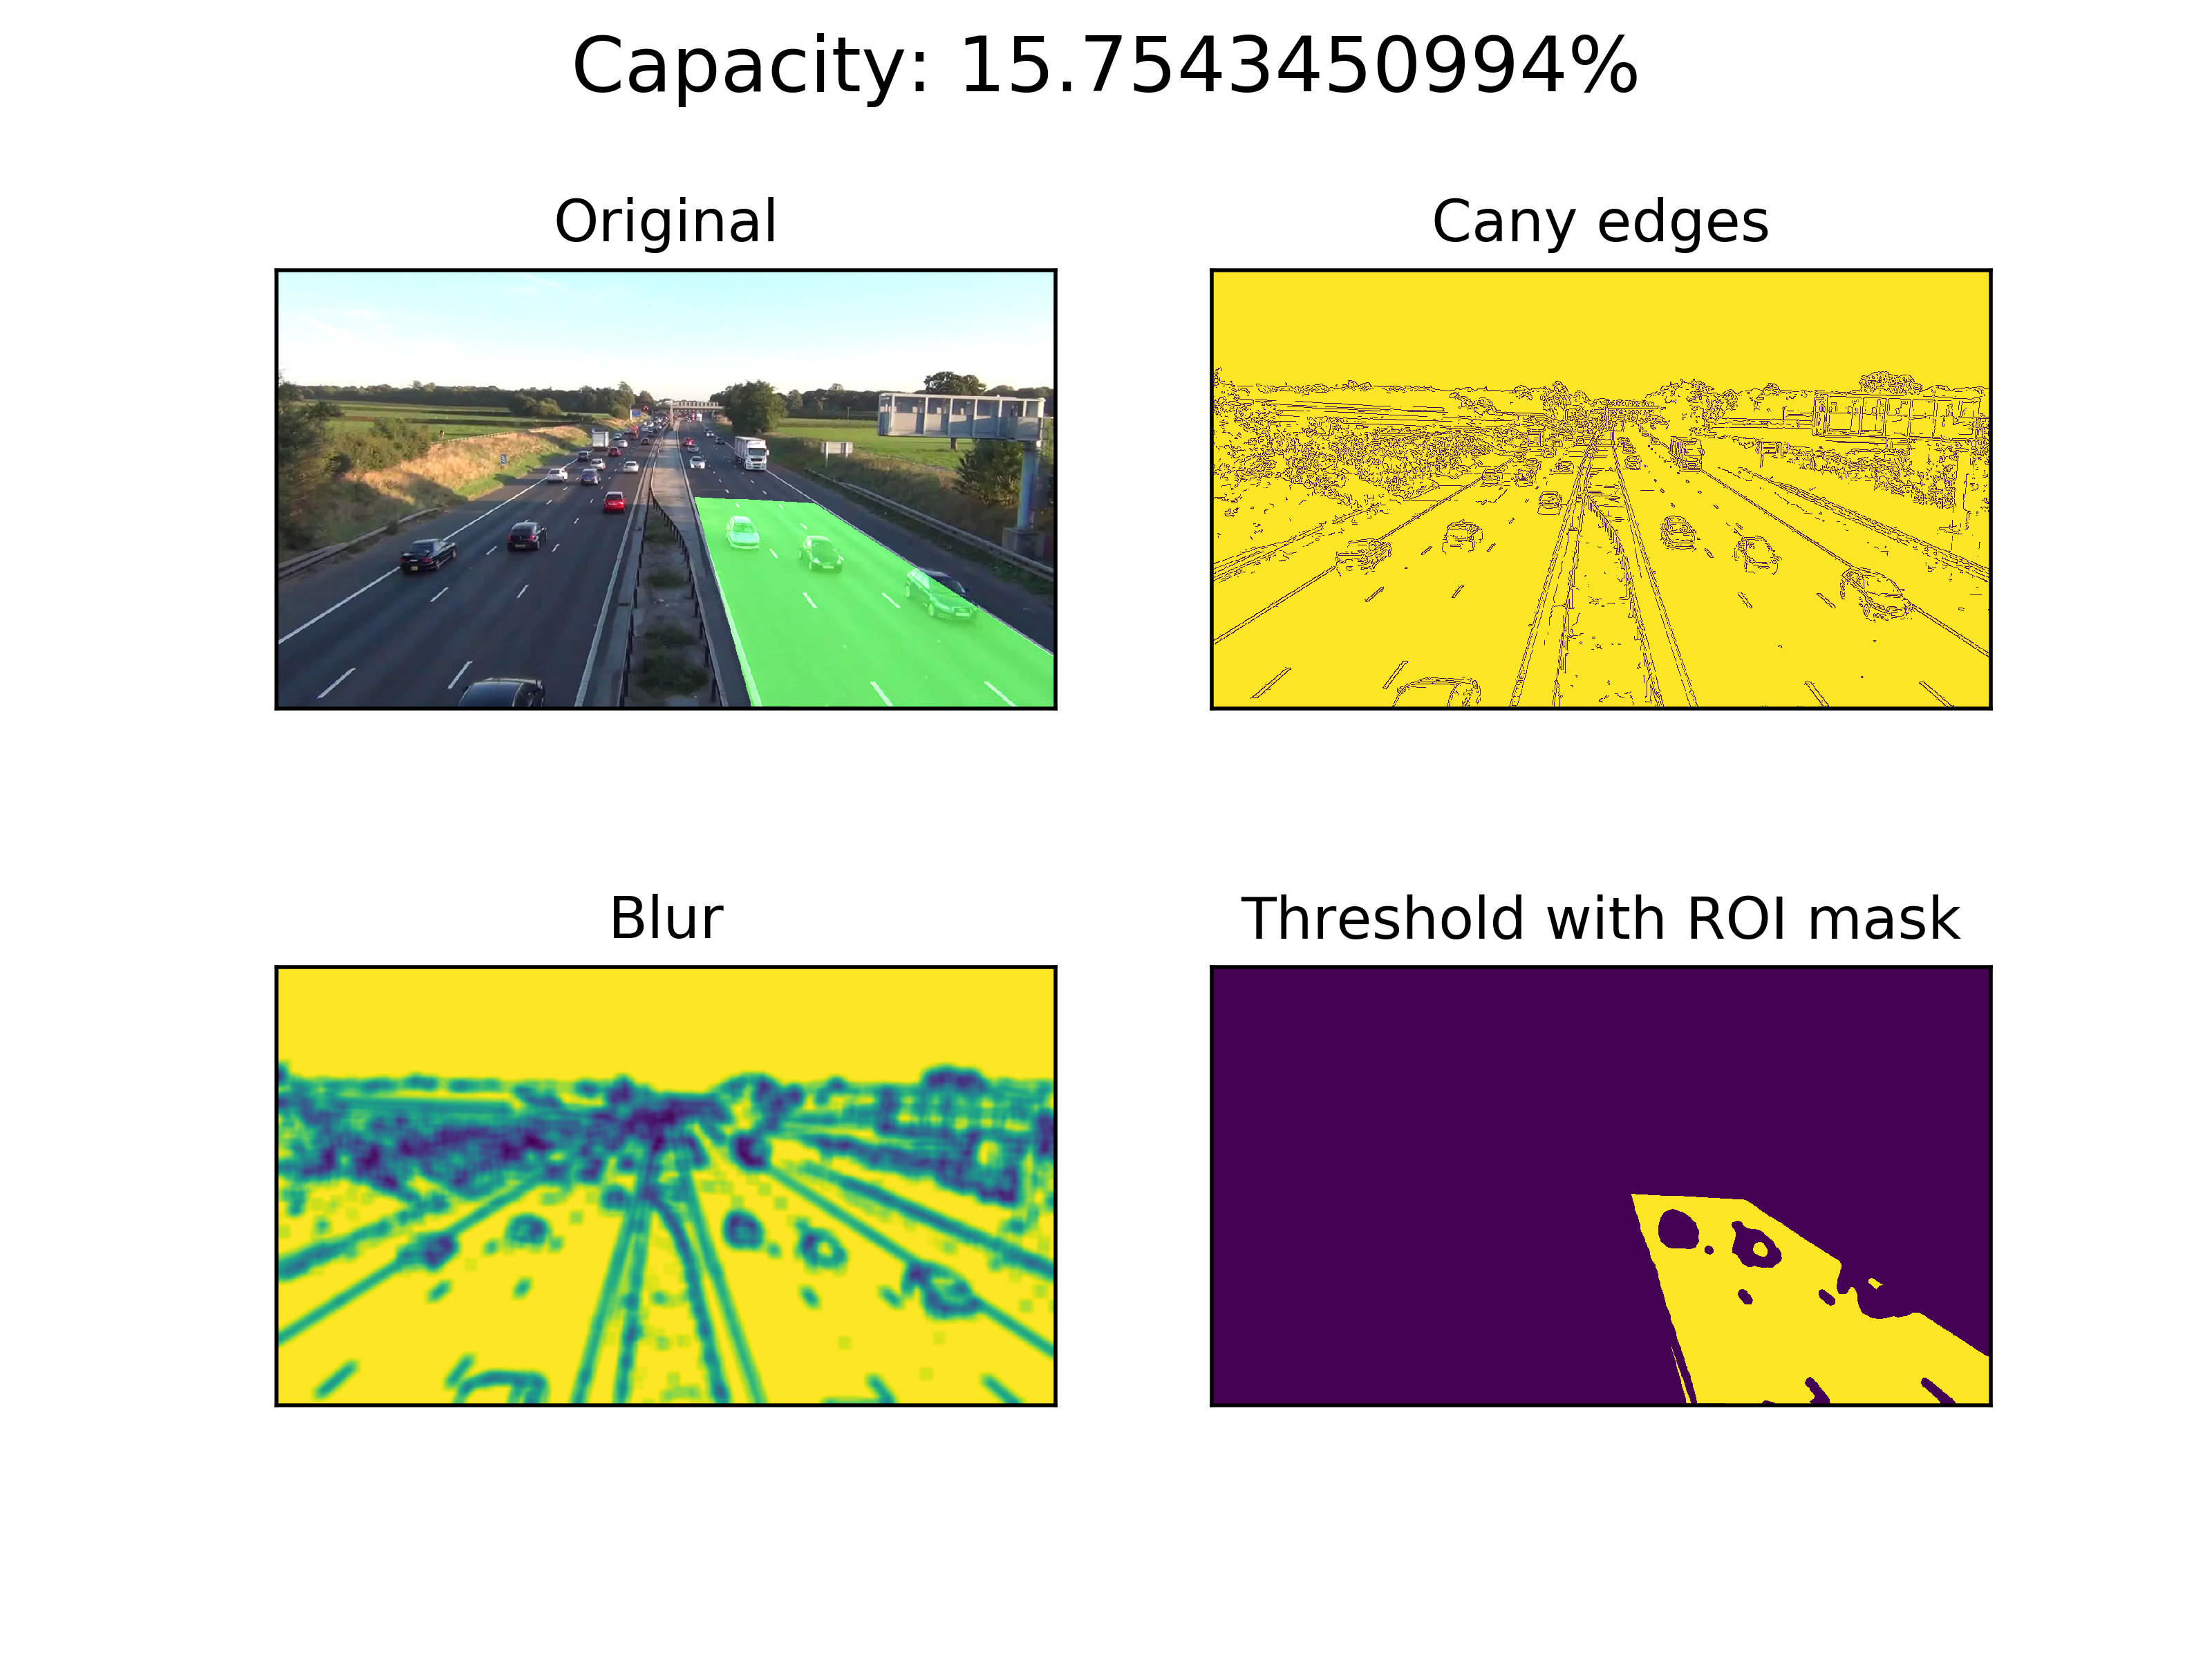 Tutorial: Counting Road Traffic Capacity with OpenCV